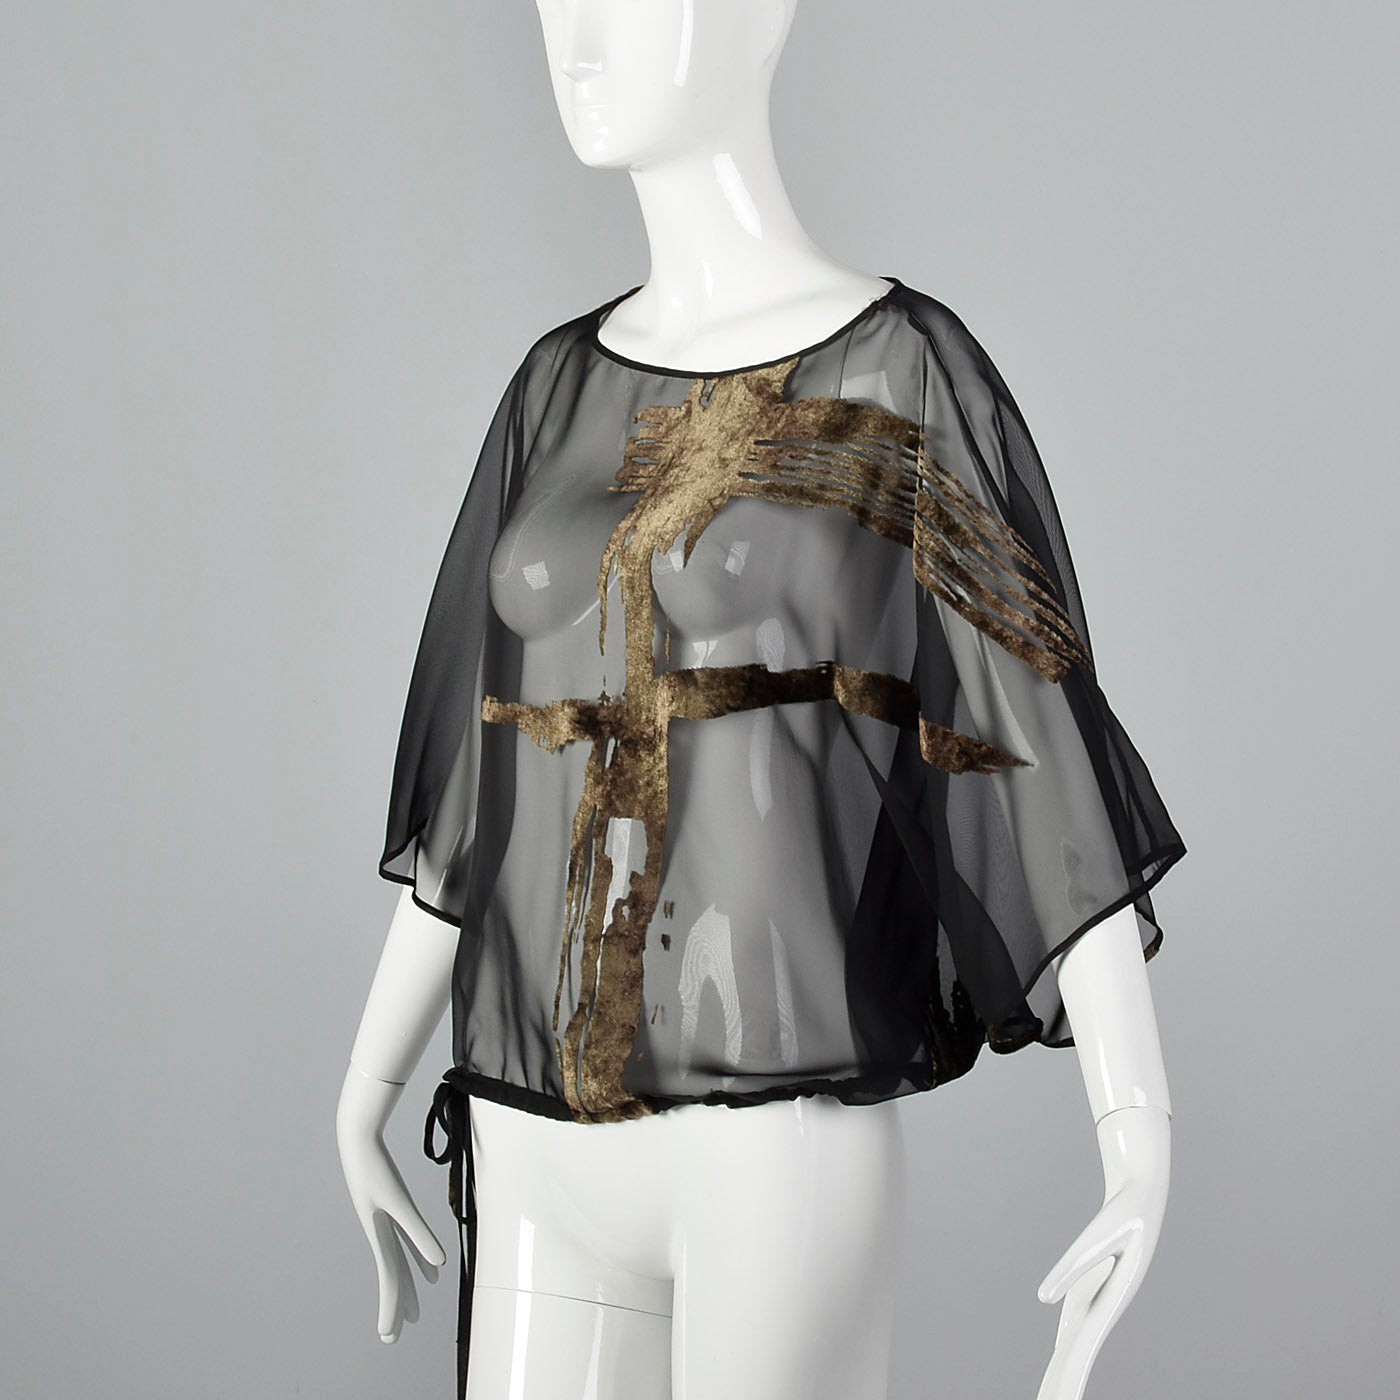 1990s Sheer Black Top with Batwing Sleeves